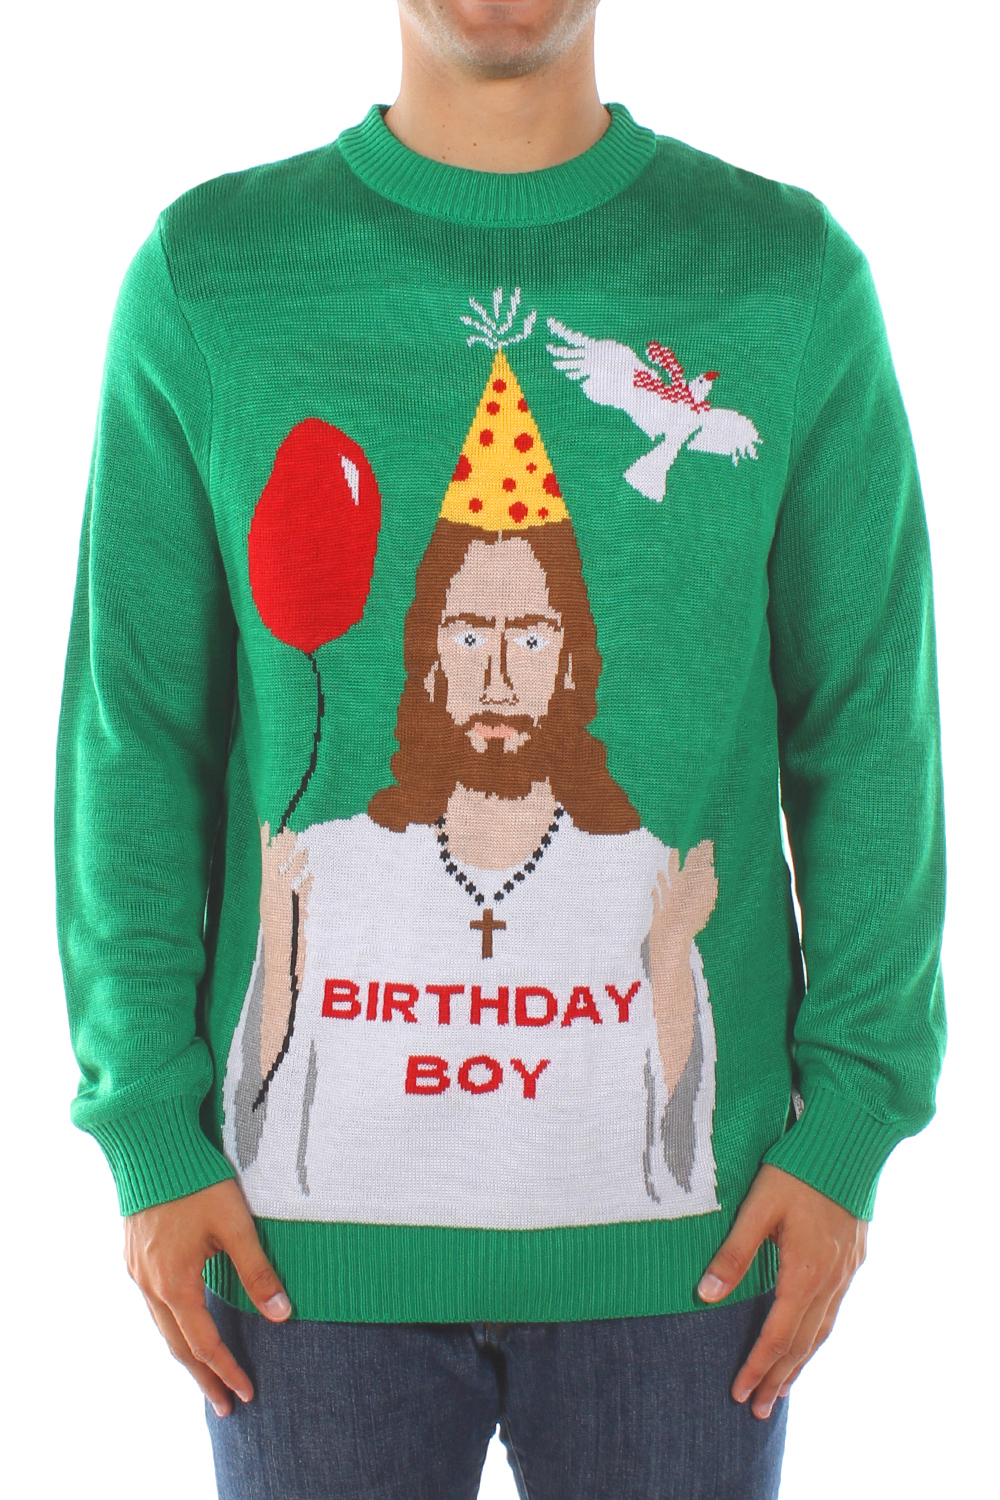 Christmas Sweaters - Men's Happy Birthday Jesus Sweater by Tipsy Elves